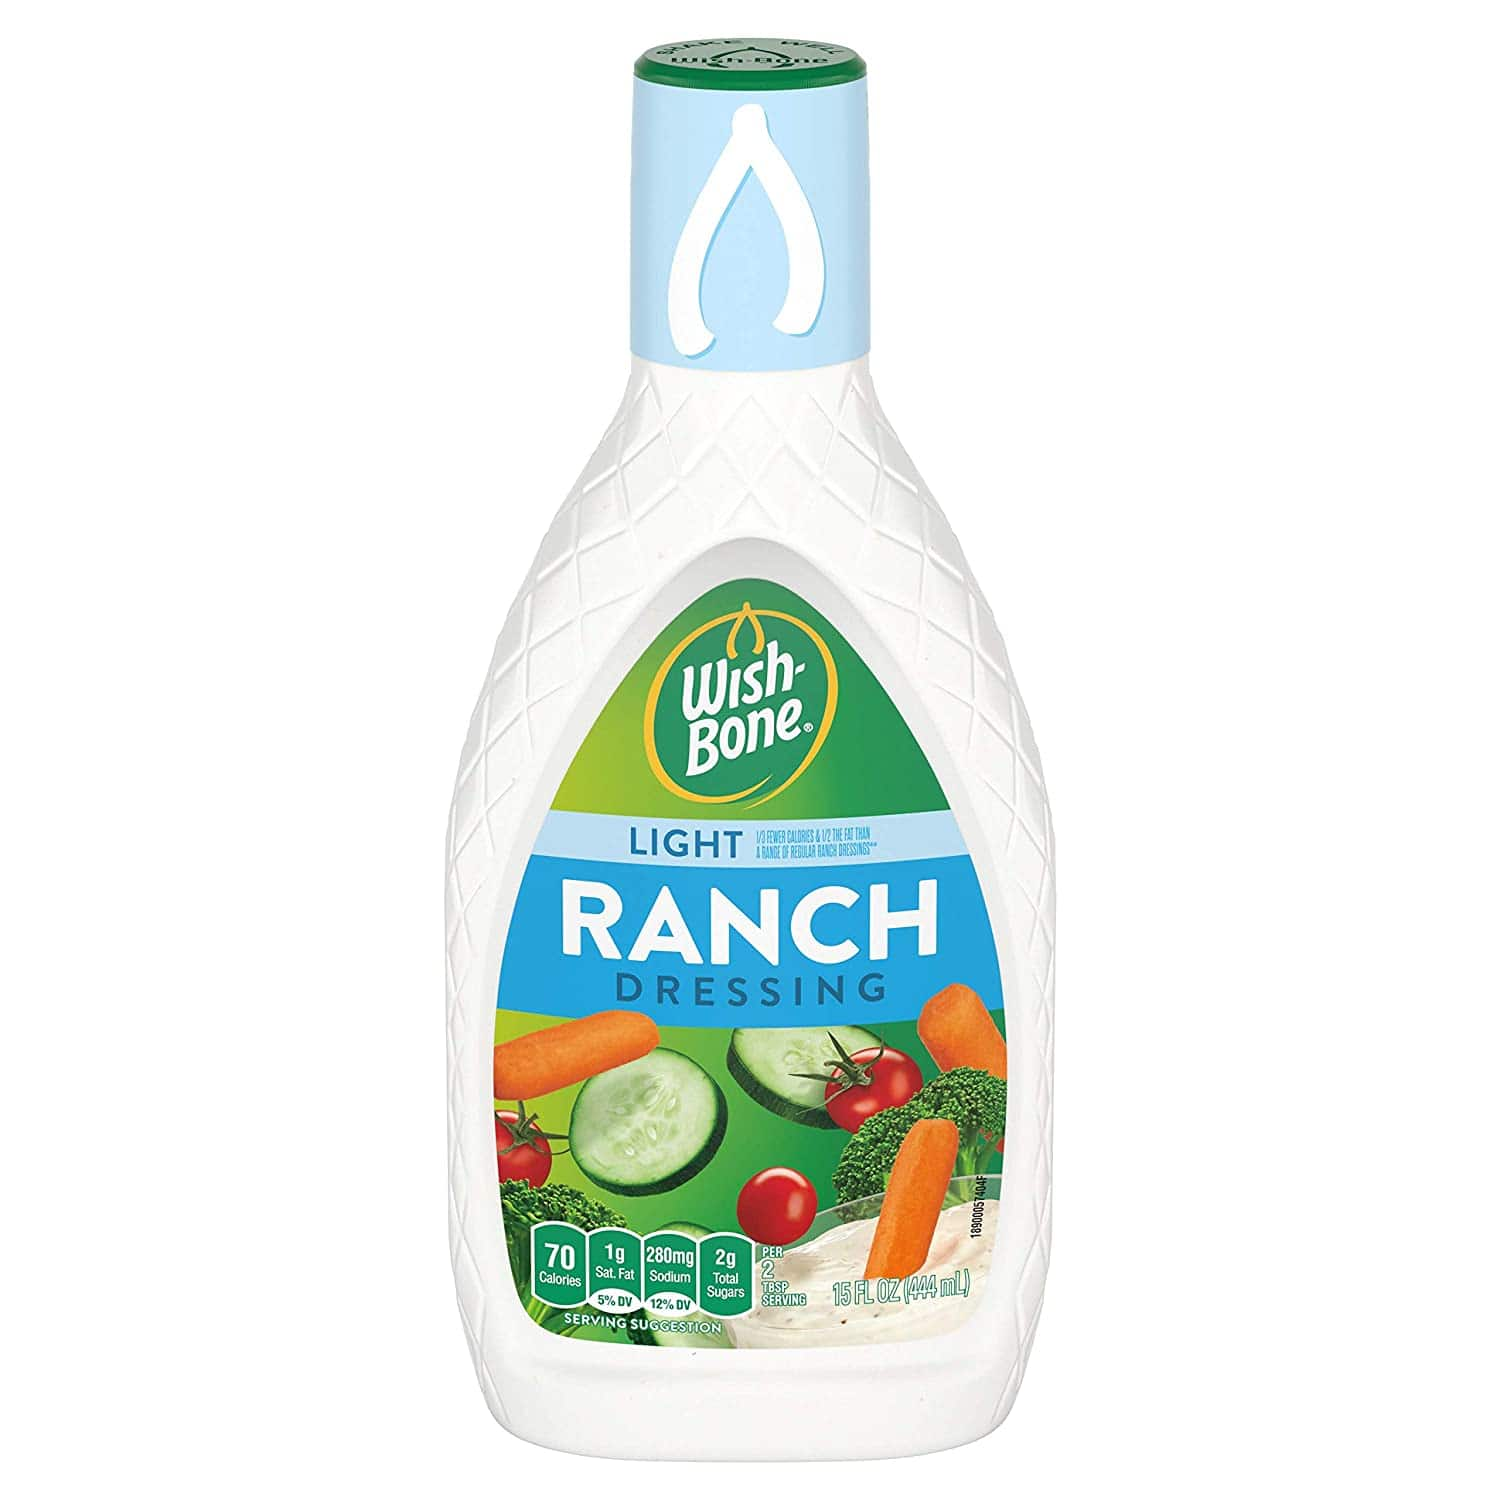 Wish-Bone 15oz Salad Dressings: Light Ranch $1.67, Creamy Caesar or Ranch $1.70 & More - FS w/ S&S